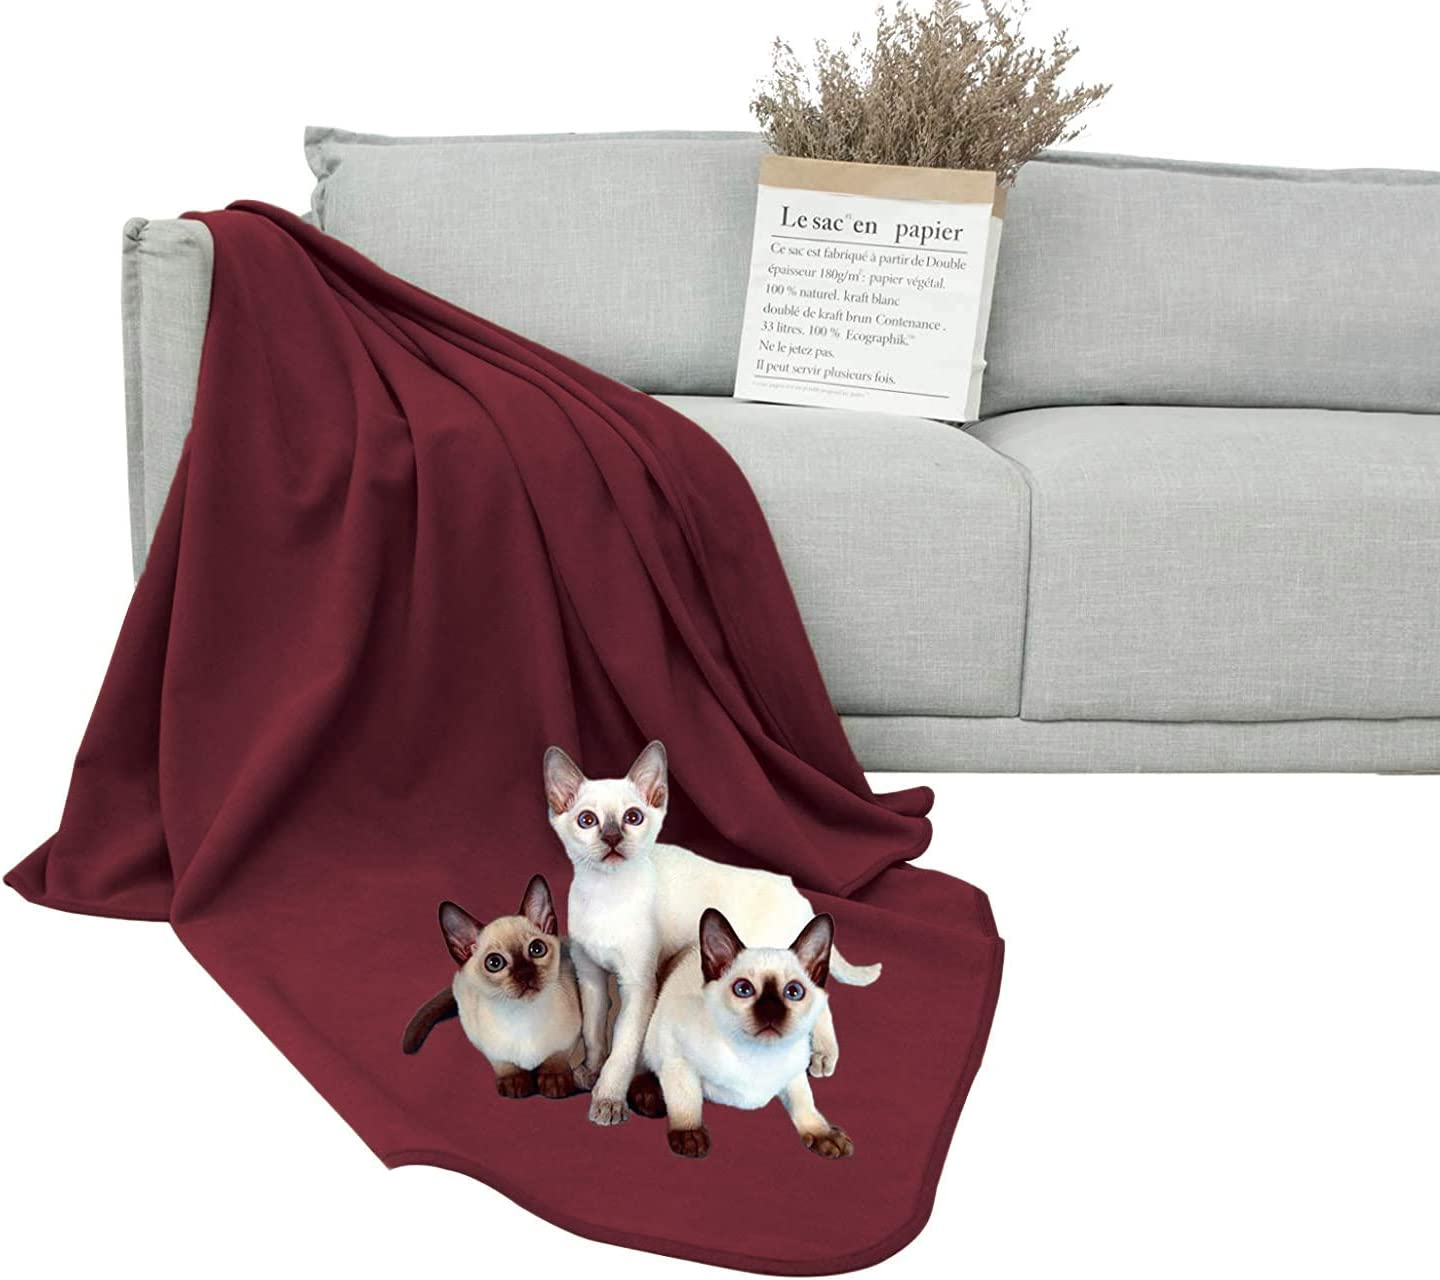 DEARTOWN 100% Waterproof Furniture Cover for Dogs and Cats,Super Soft Pet Blanket for Bed Couch Sofa (70x120 Inches, Burgundy)